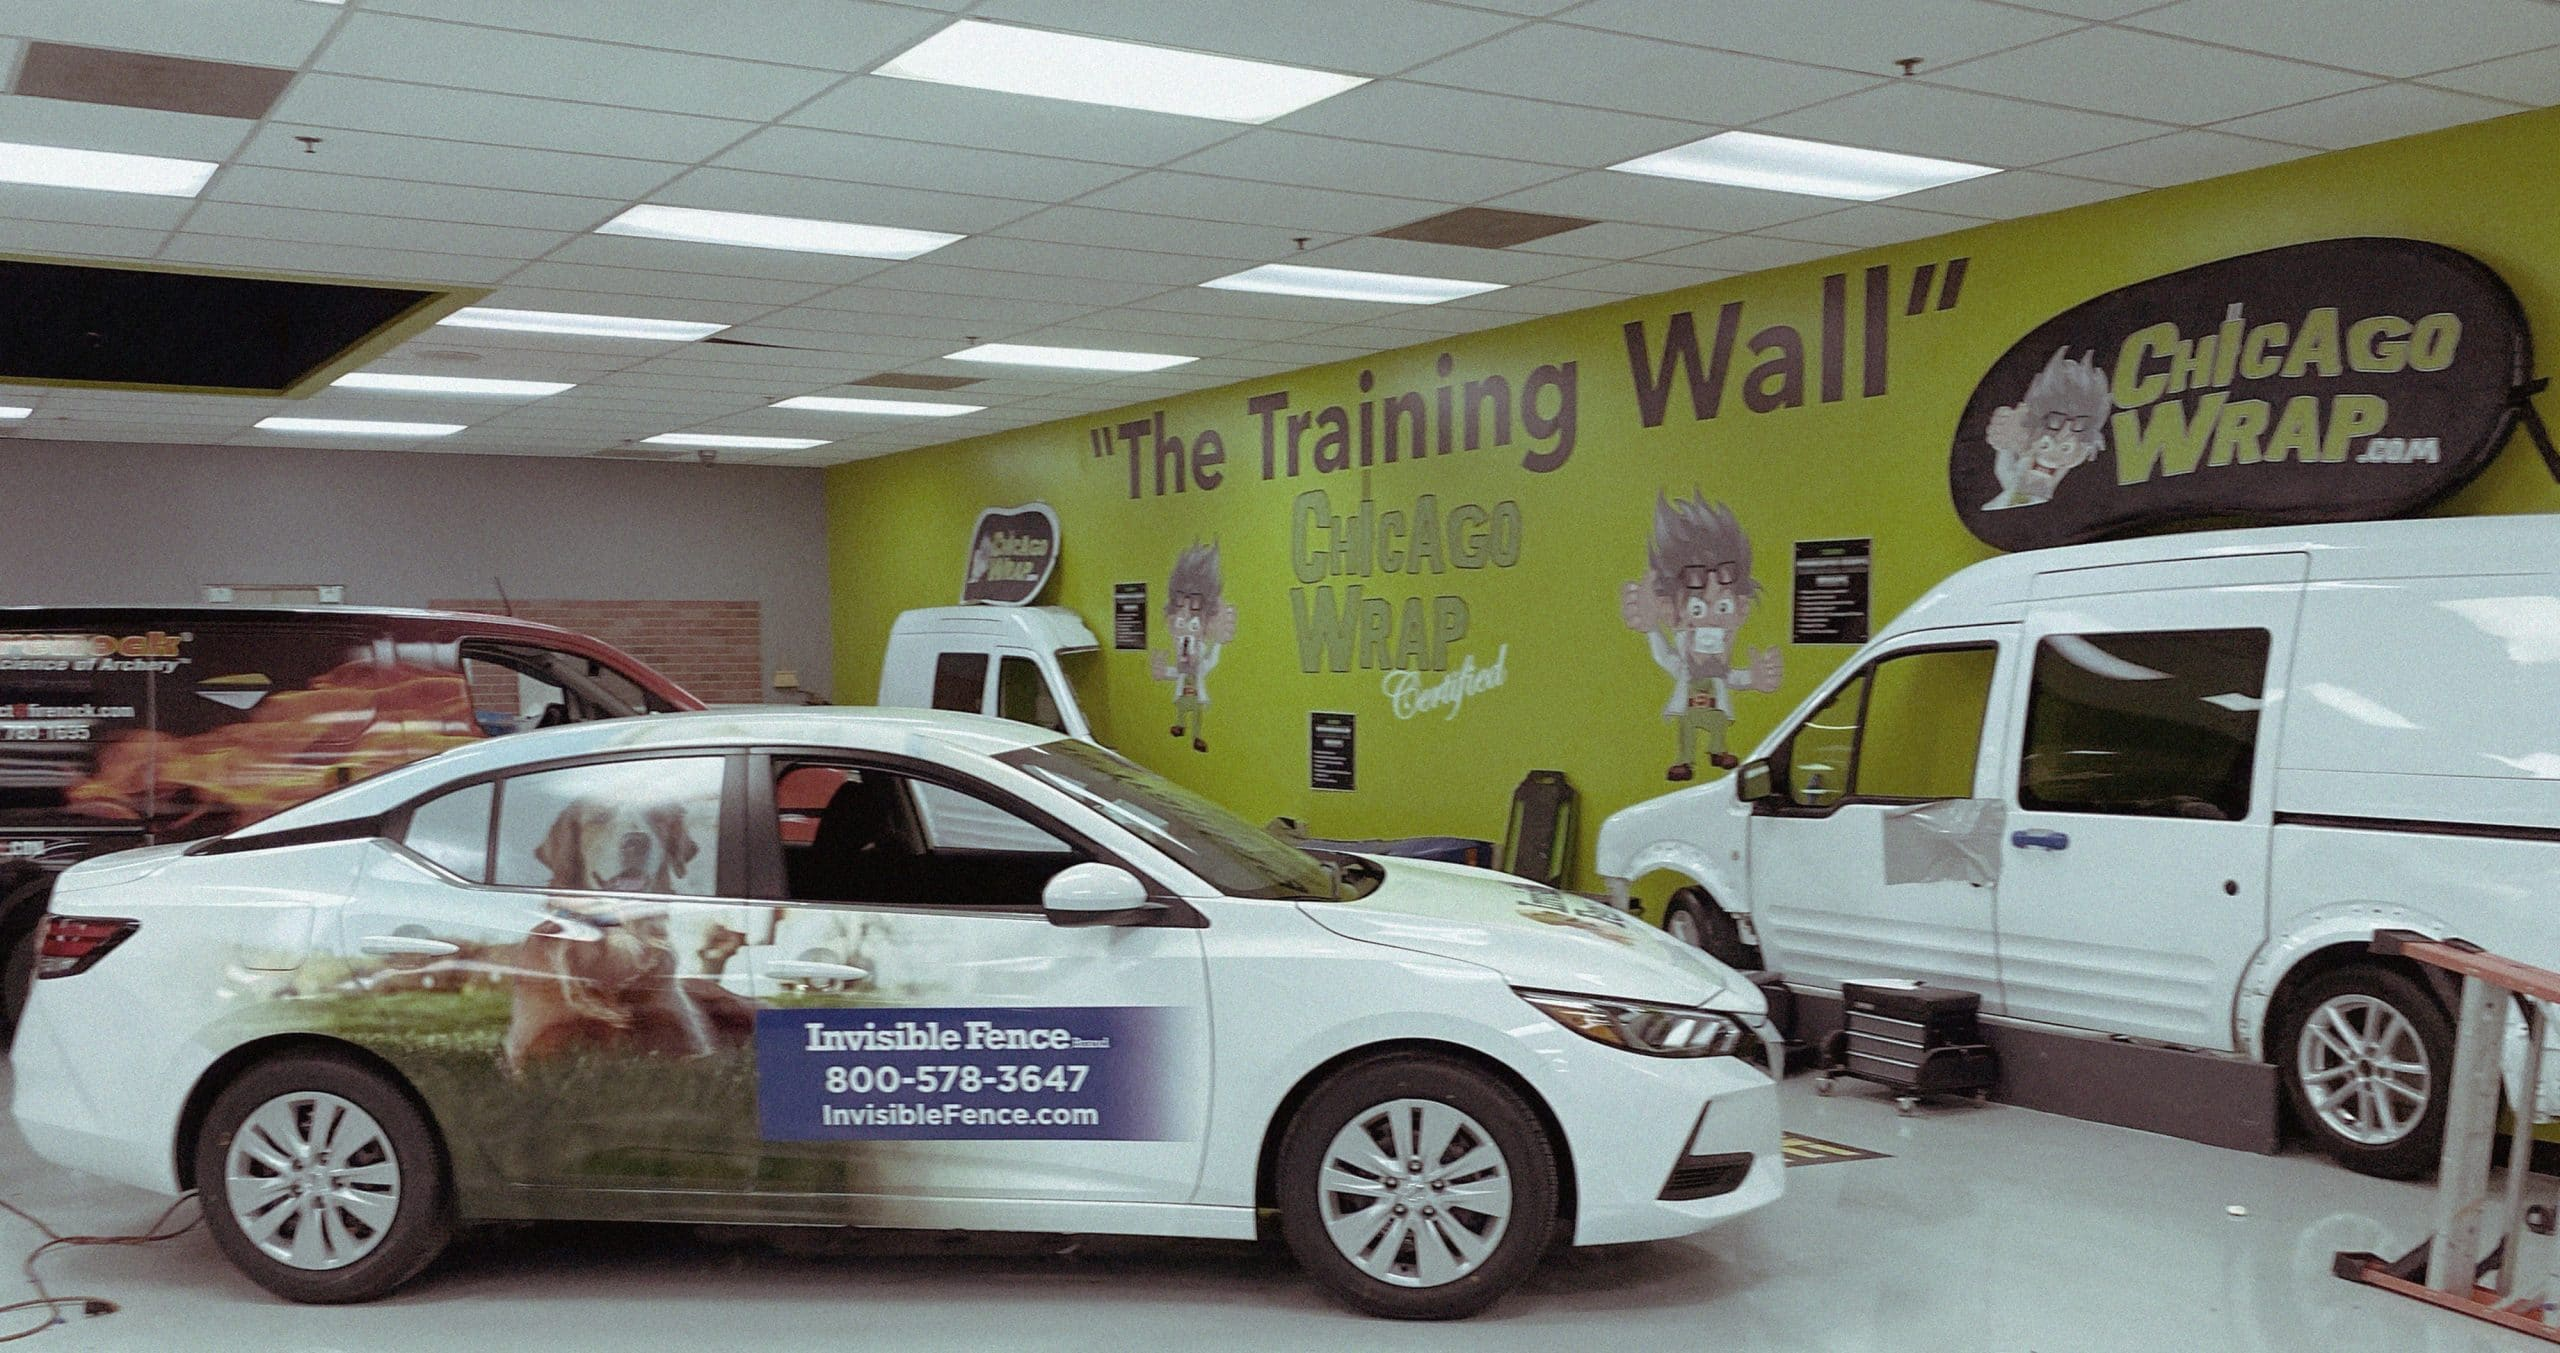 Heffner's course allows graduates to return after completing the two-week training to wrap their own vehicle or their first customer's.